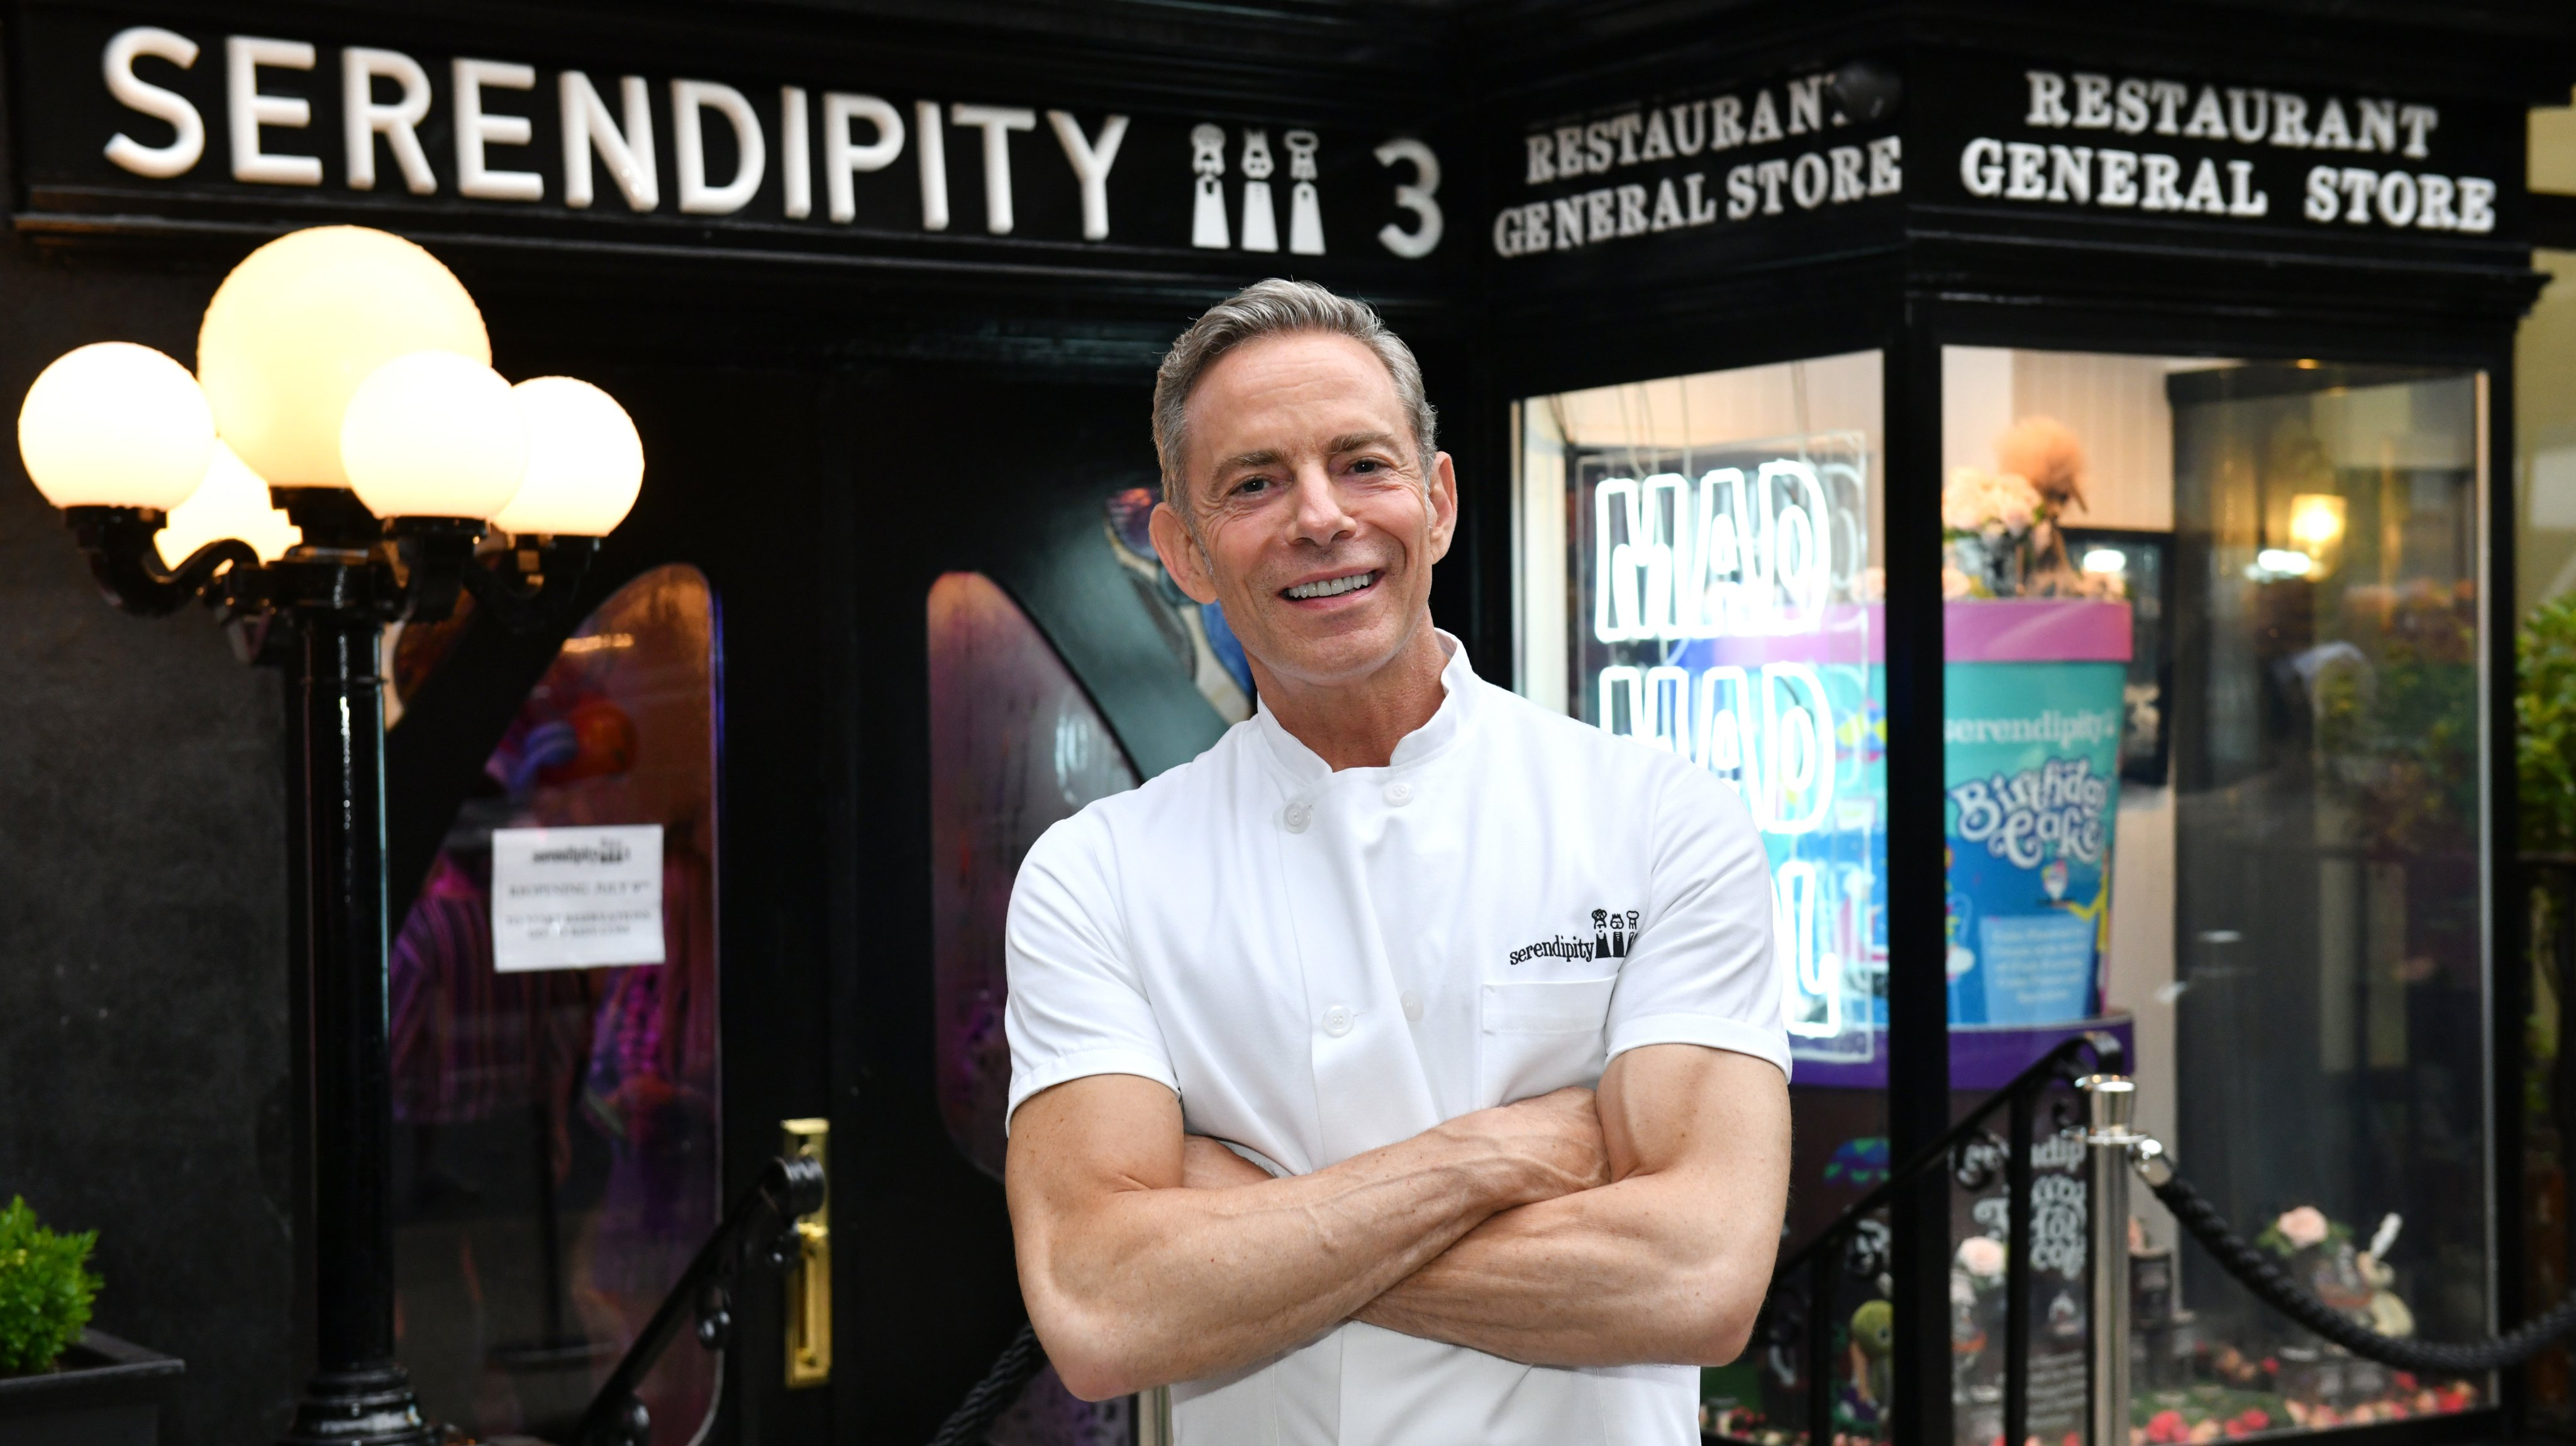 Serendipity3 Hosts A Preview Night Ahead Of Its Grand Reopening